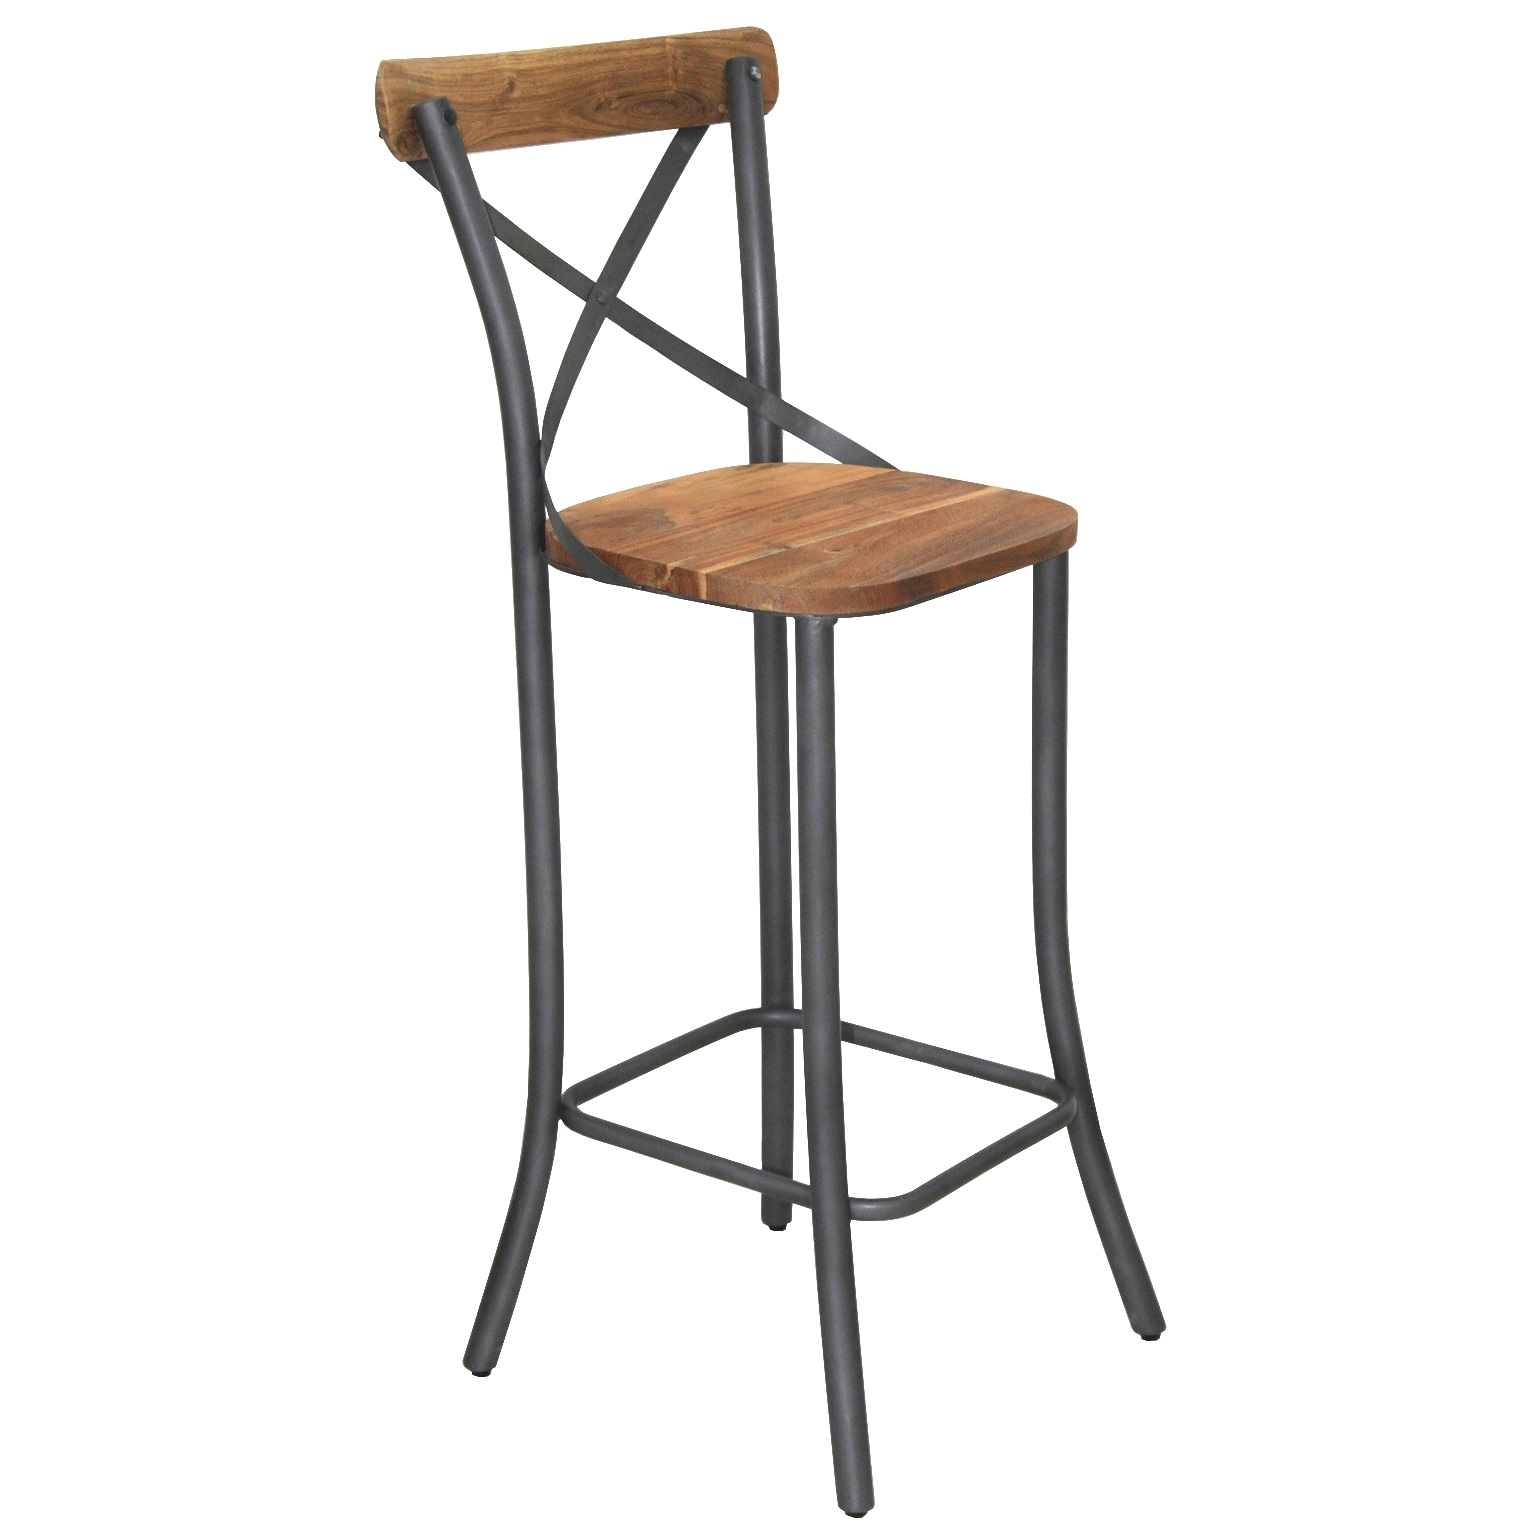 tabouret de bar bistrot de style industriel en m tal et bois le d p t des docks. Black Bedroom Furniture Sets. Home Design Ideas